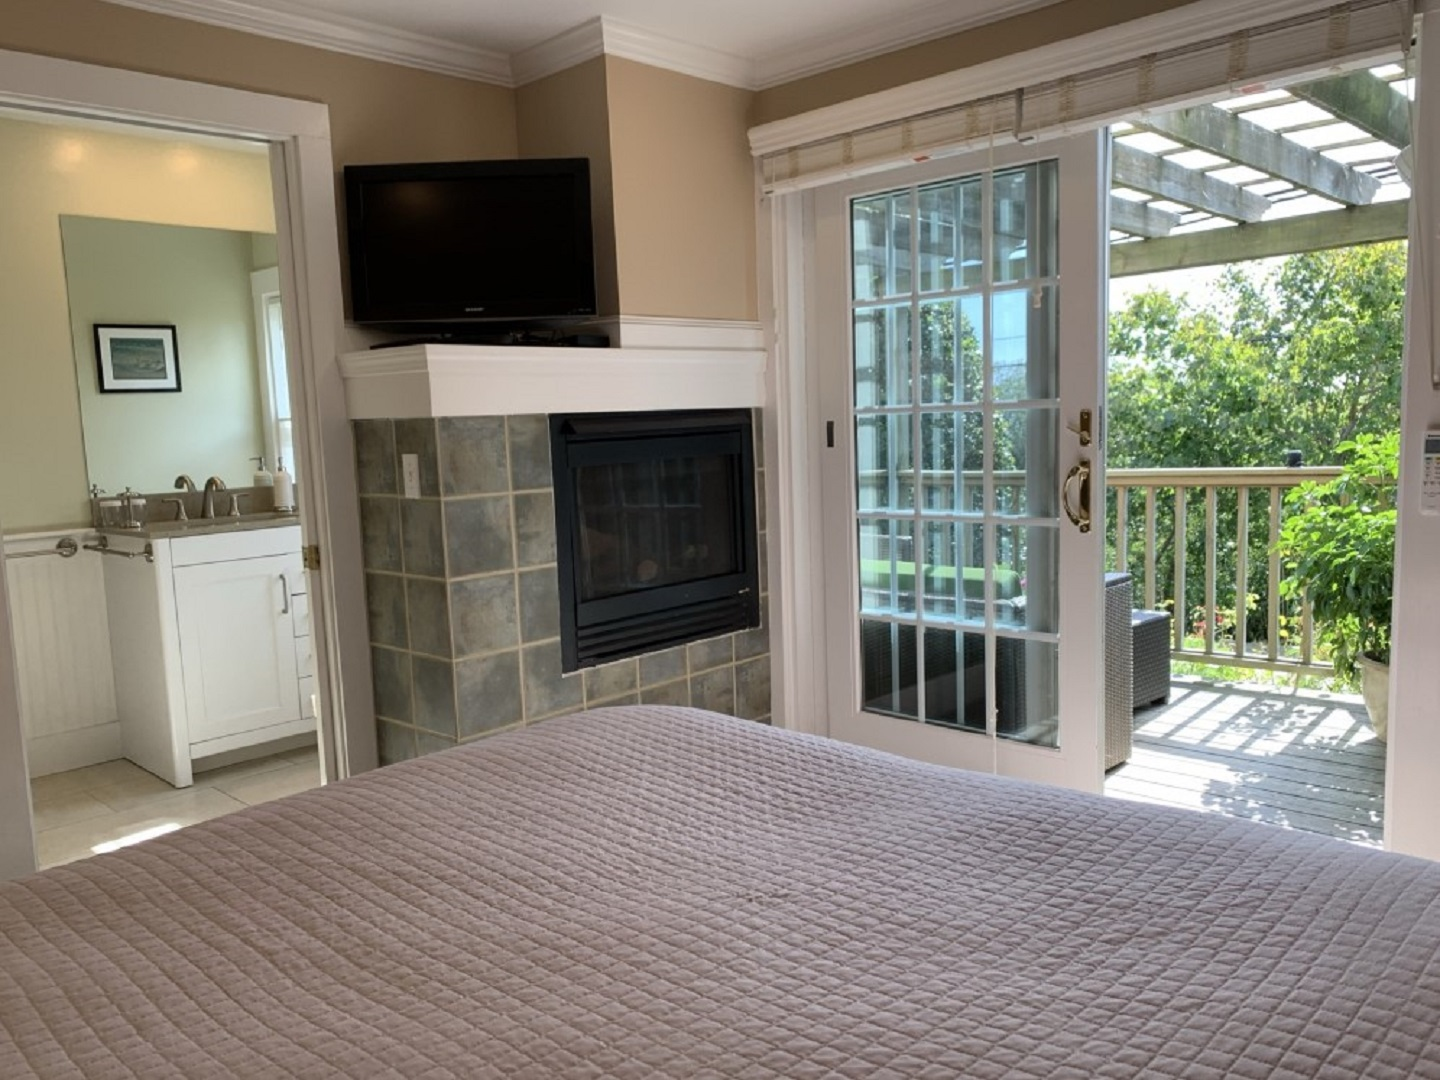 A living room with a fireplace and a large window at Aerie House & Beach Club.